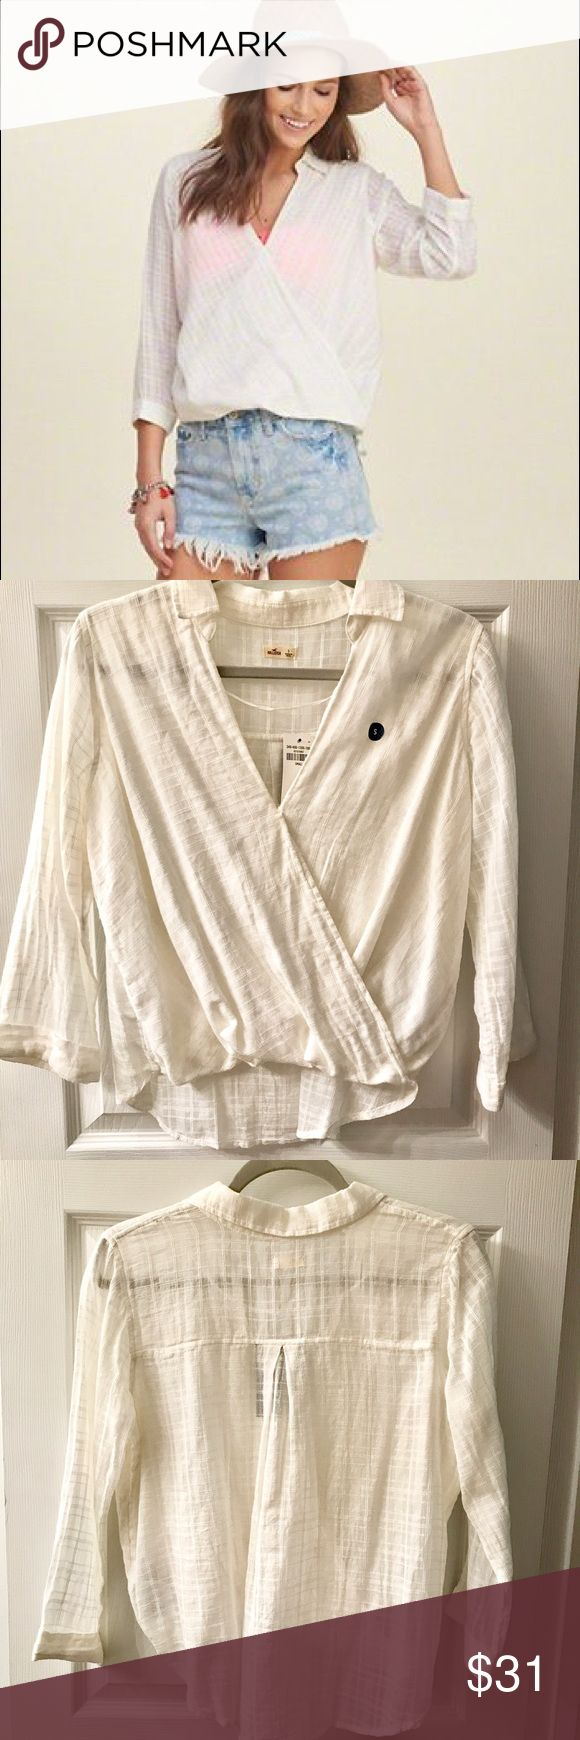 NWT Hollister White Wrap Front Shirt Super cute NEVER WORN wrap front shirt from Hollister! I really don't know why I never wore it - perfect for summer or ever to cover up a bathing suit! NWT - kind of see through and it's between true white and off white. Hollister Tops Blouses